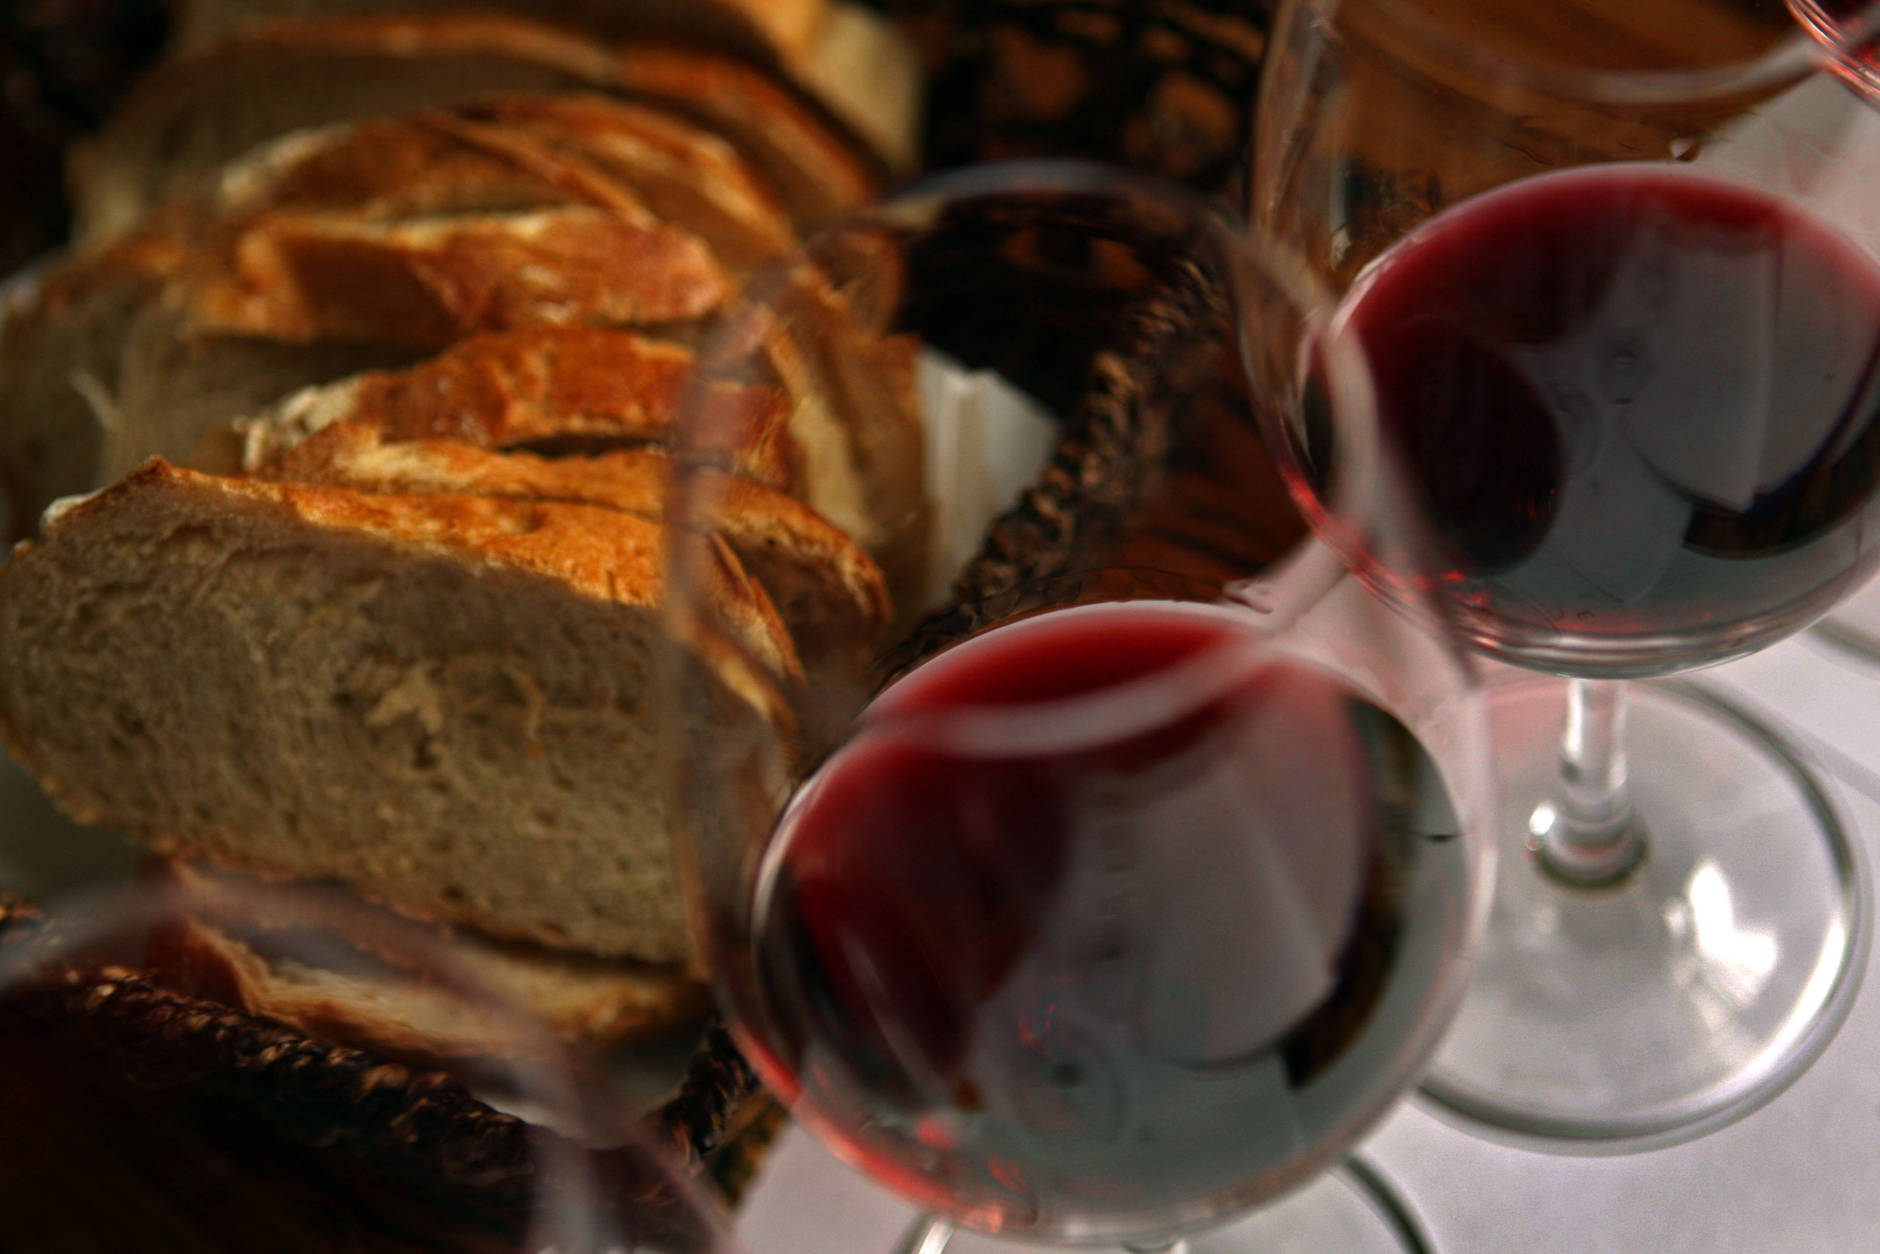 TEL AVIV, ISRAEL - MARCH 25:  Fresh country bread and red wine are served with lunch at the Carmella Banahela bistro on March 25, 2008 in Tel Aviv, Israel. World food prices are soaring in the face of what some analysts are describing as a perfect storm of circumstances; increasing demand from developing economies in Asia, rising fuel prices, severe weather impacting recent harvests and an economic shift to biofuel production. All this leaves the consumer paying more for basic staples such as bread and milk and is likely to have its hardest impact on poorer nations.  (Photo by David Silverman/Getty Images)